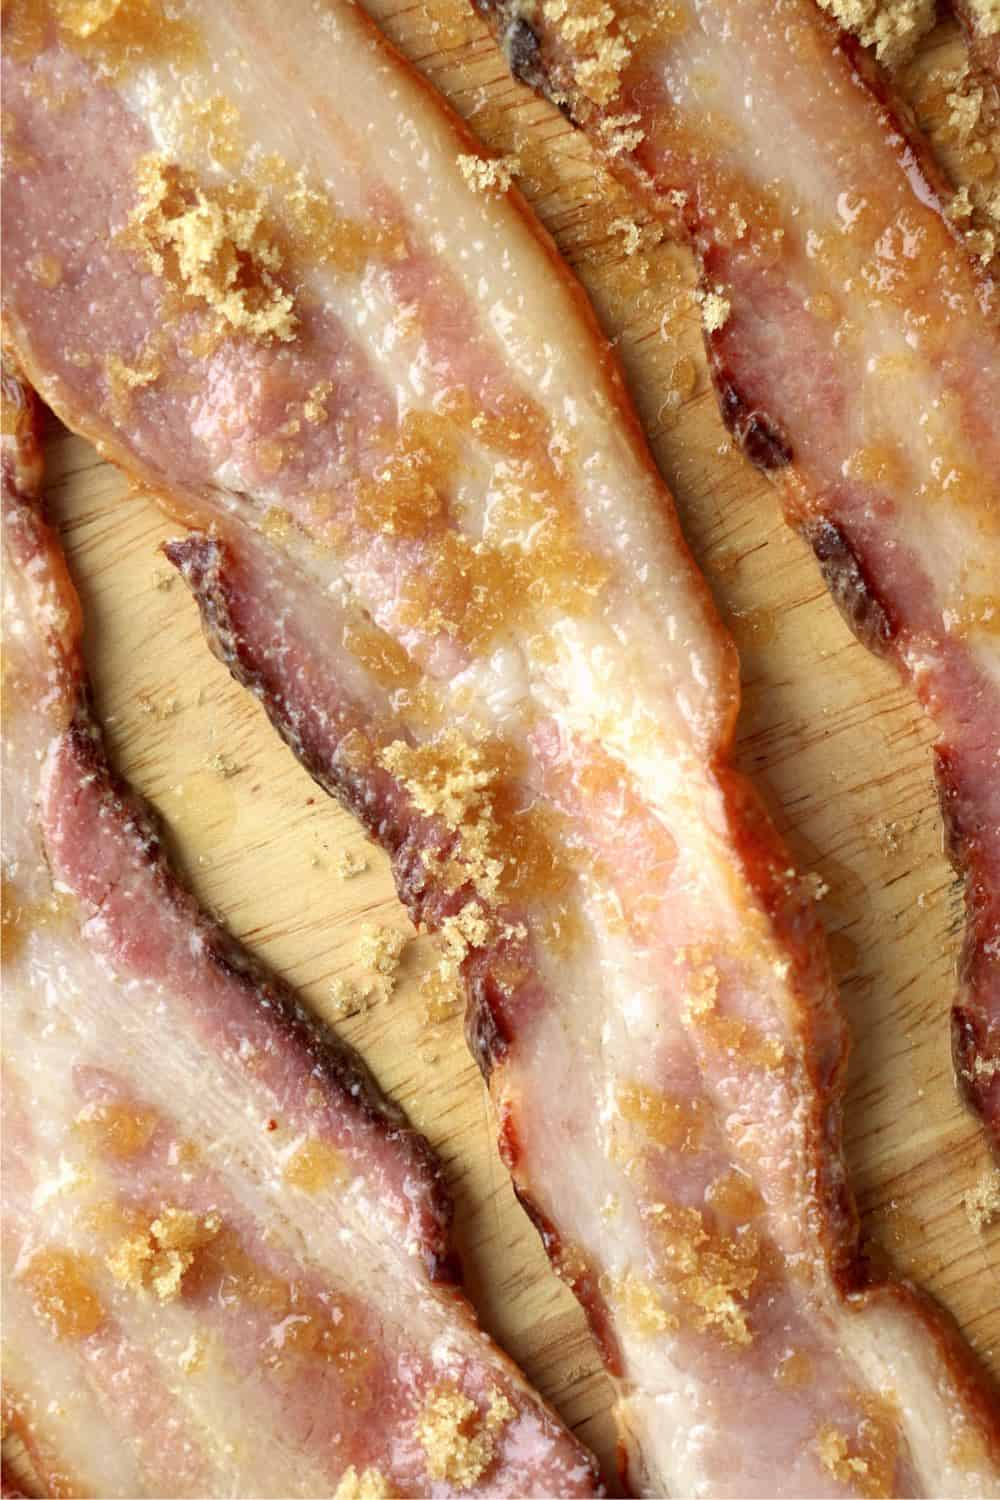 Strips of bacon with a delicious mixture of melted butter, salt and garlic powder brushed on them